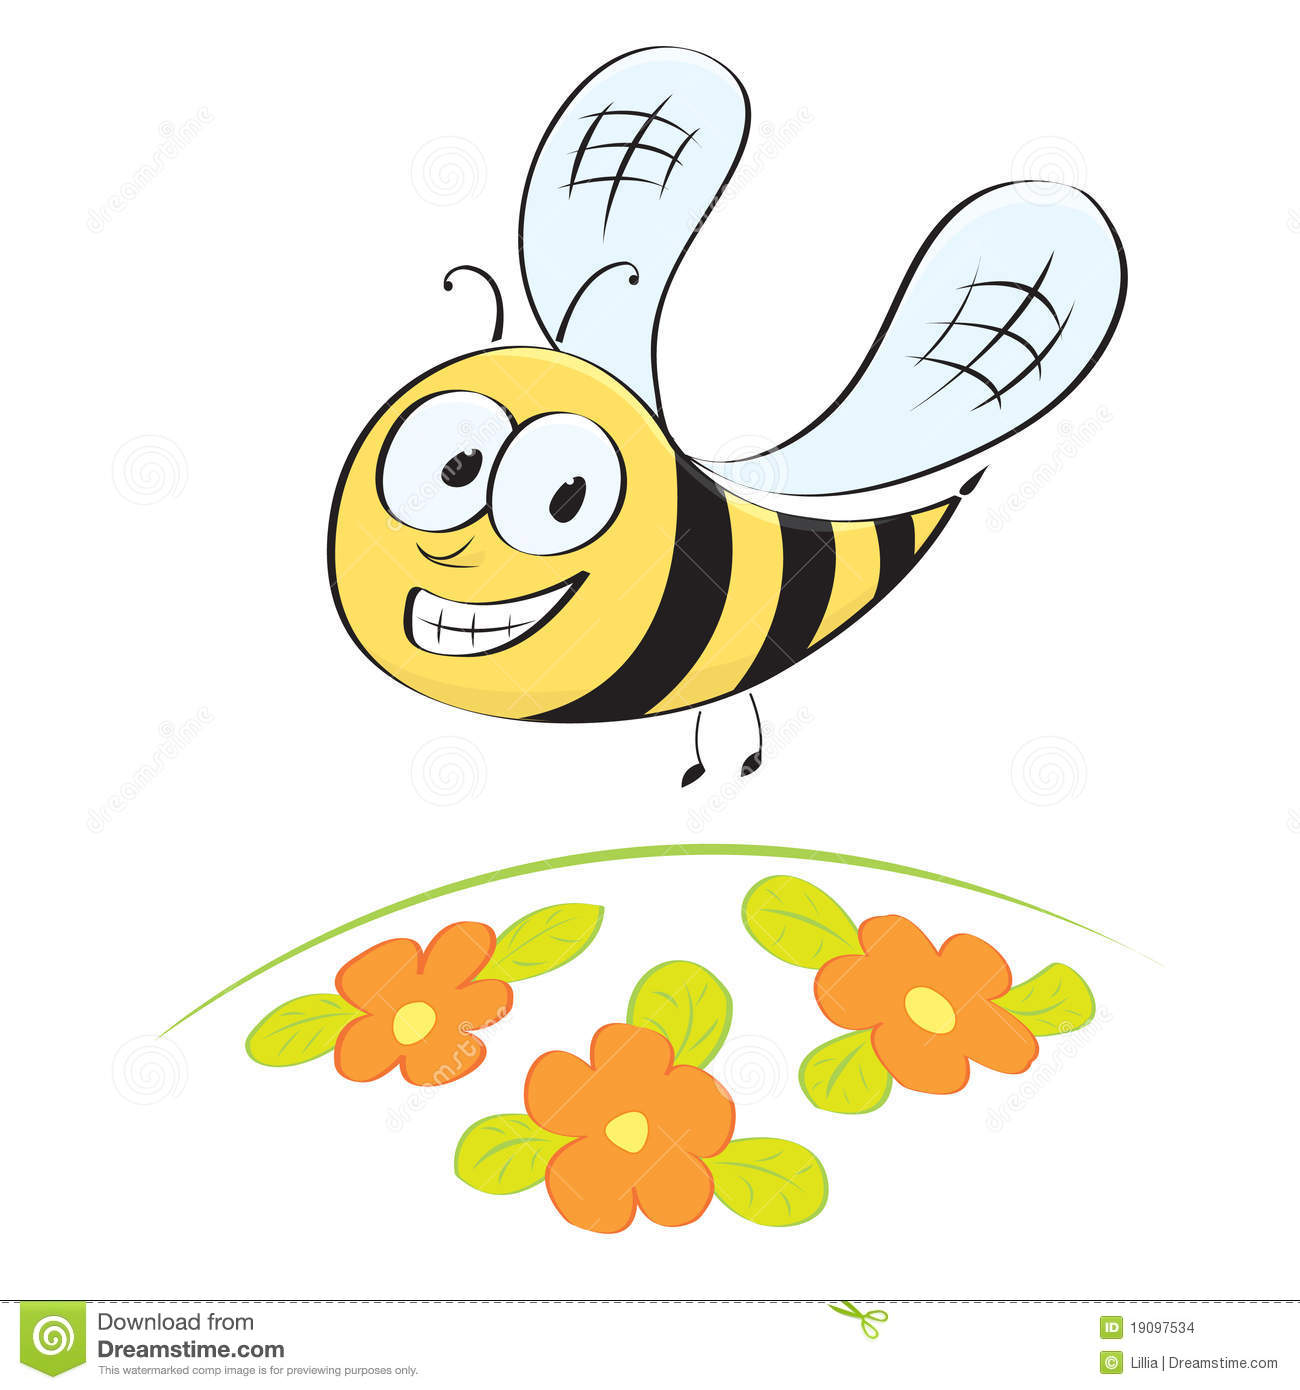 Cute bee cartoon Stock Photos and Images. 14,445 Cute bee ...